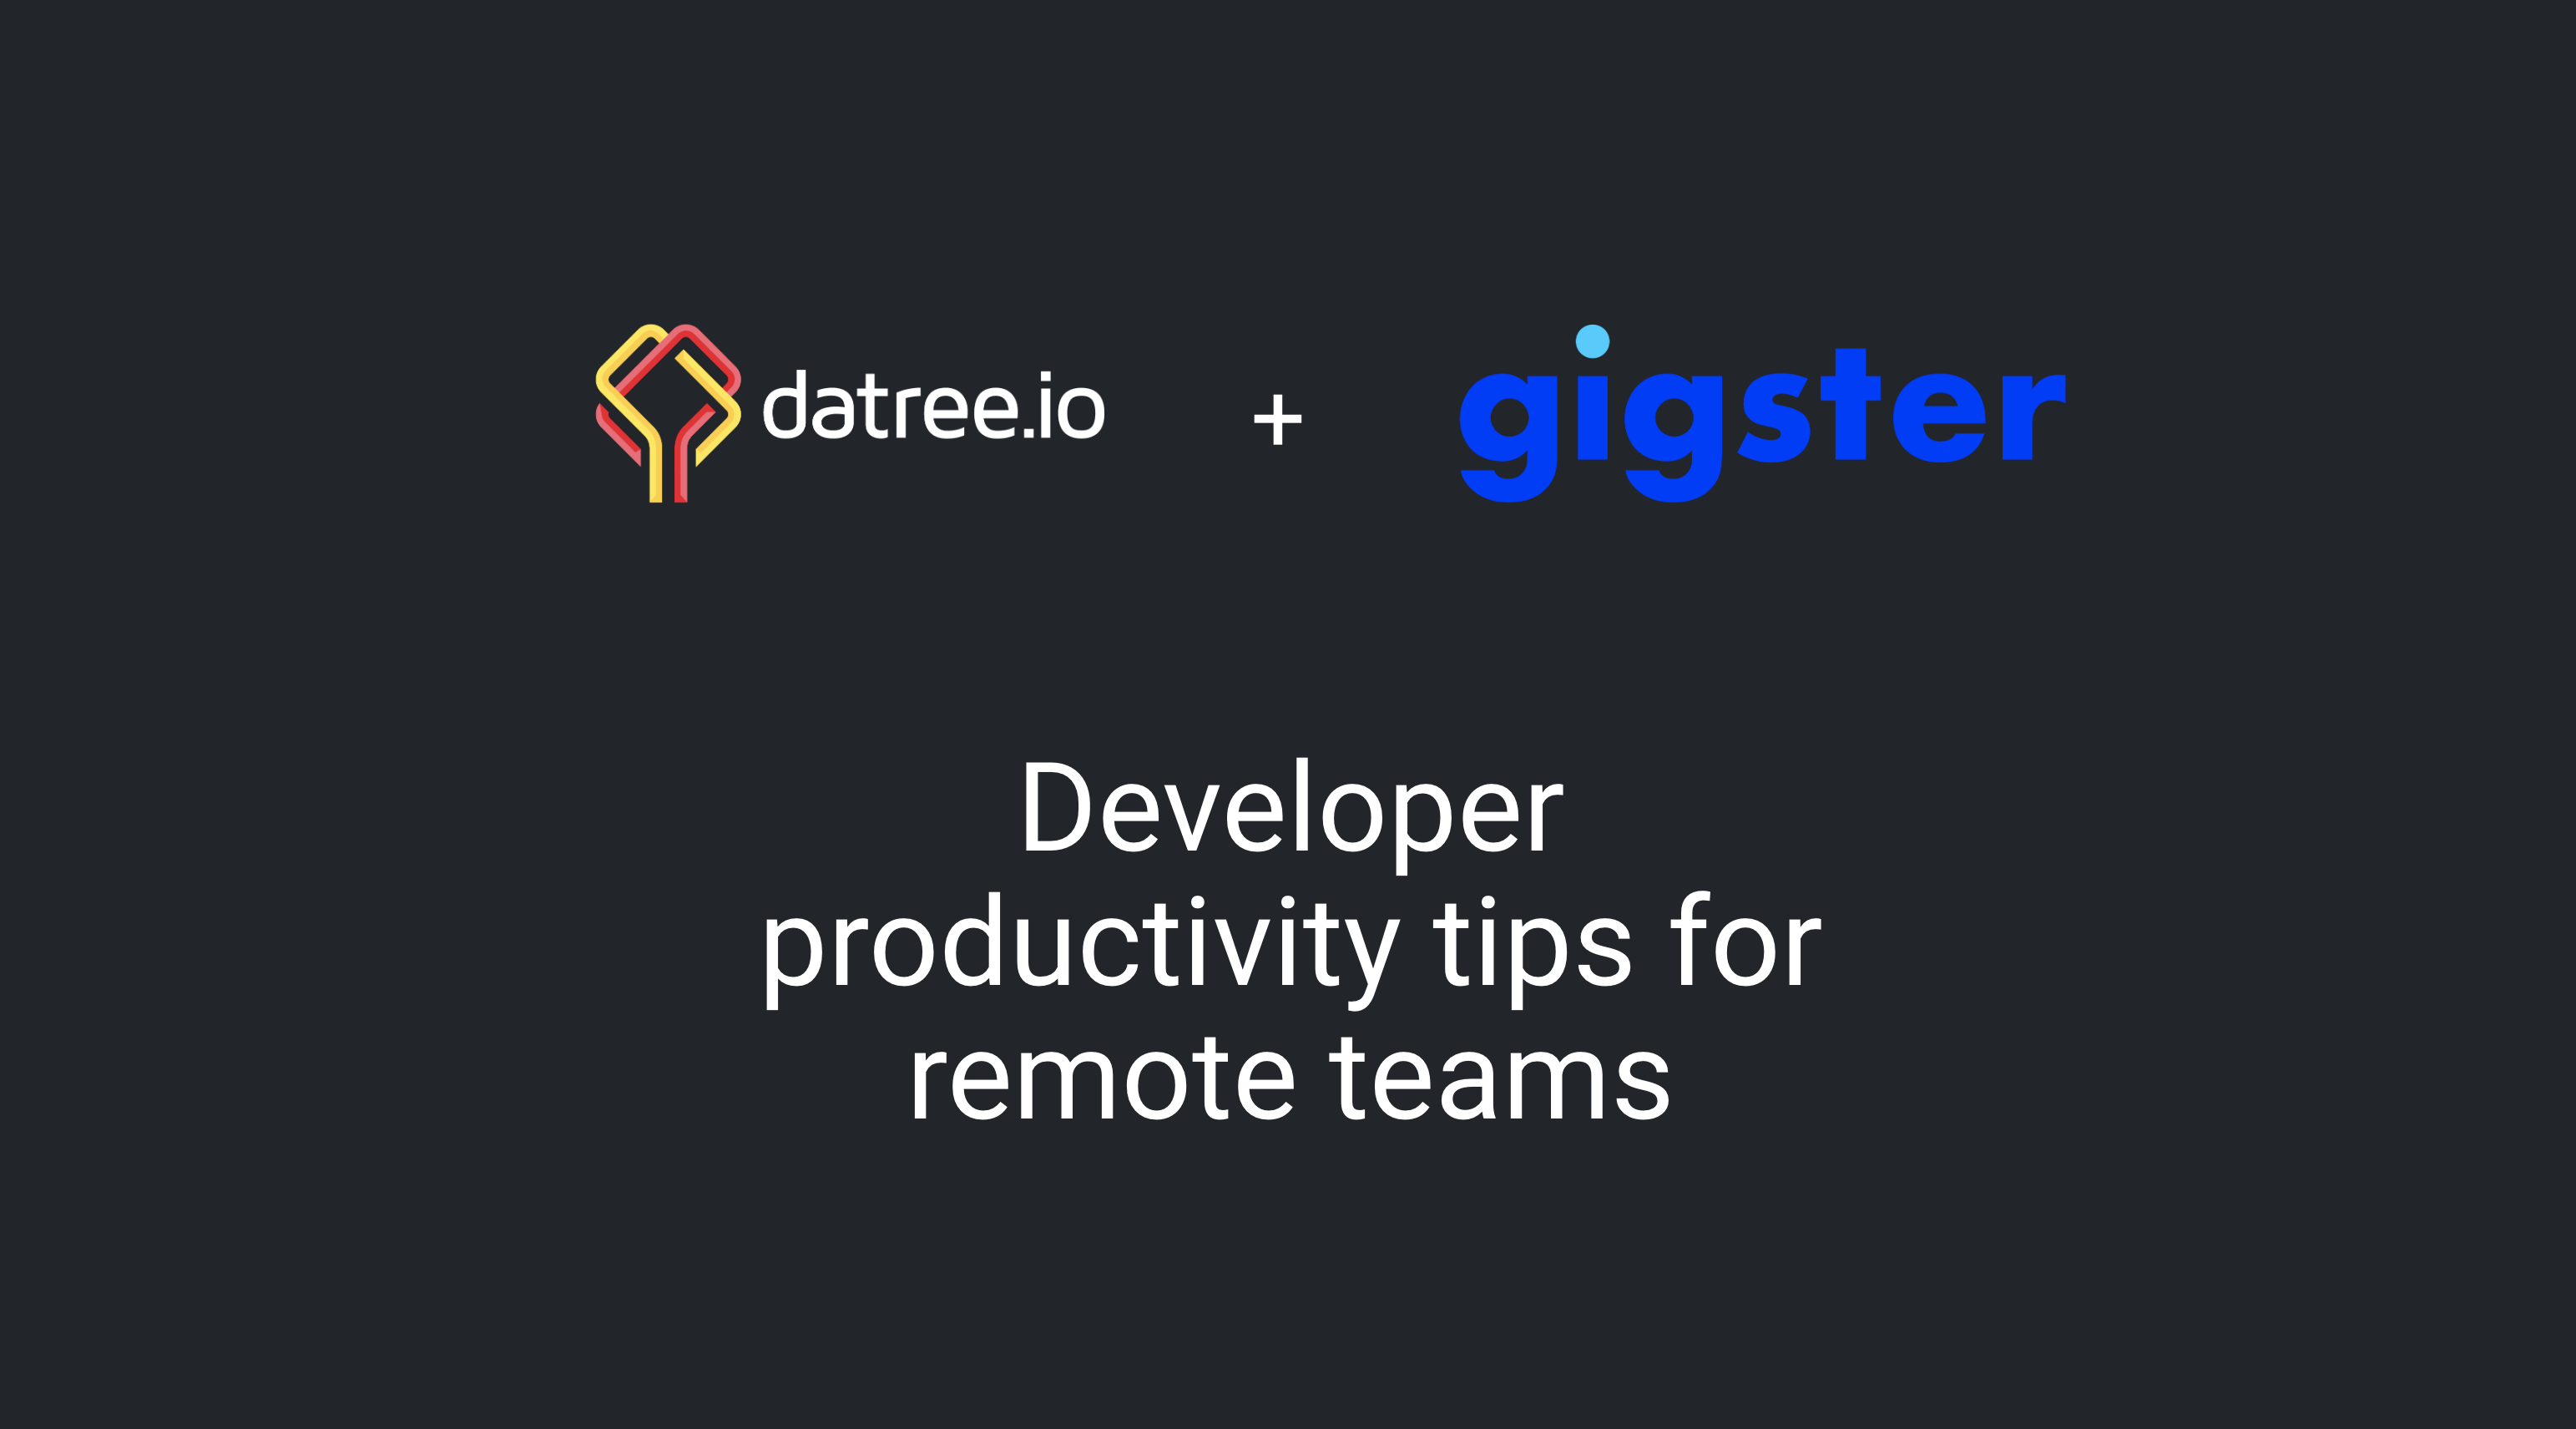 Datree + Gigster on Developer Productivity Tips for Remote Teams [On-demand webinar]